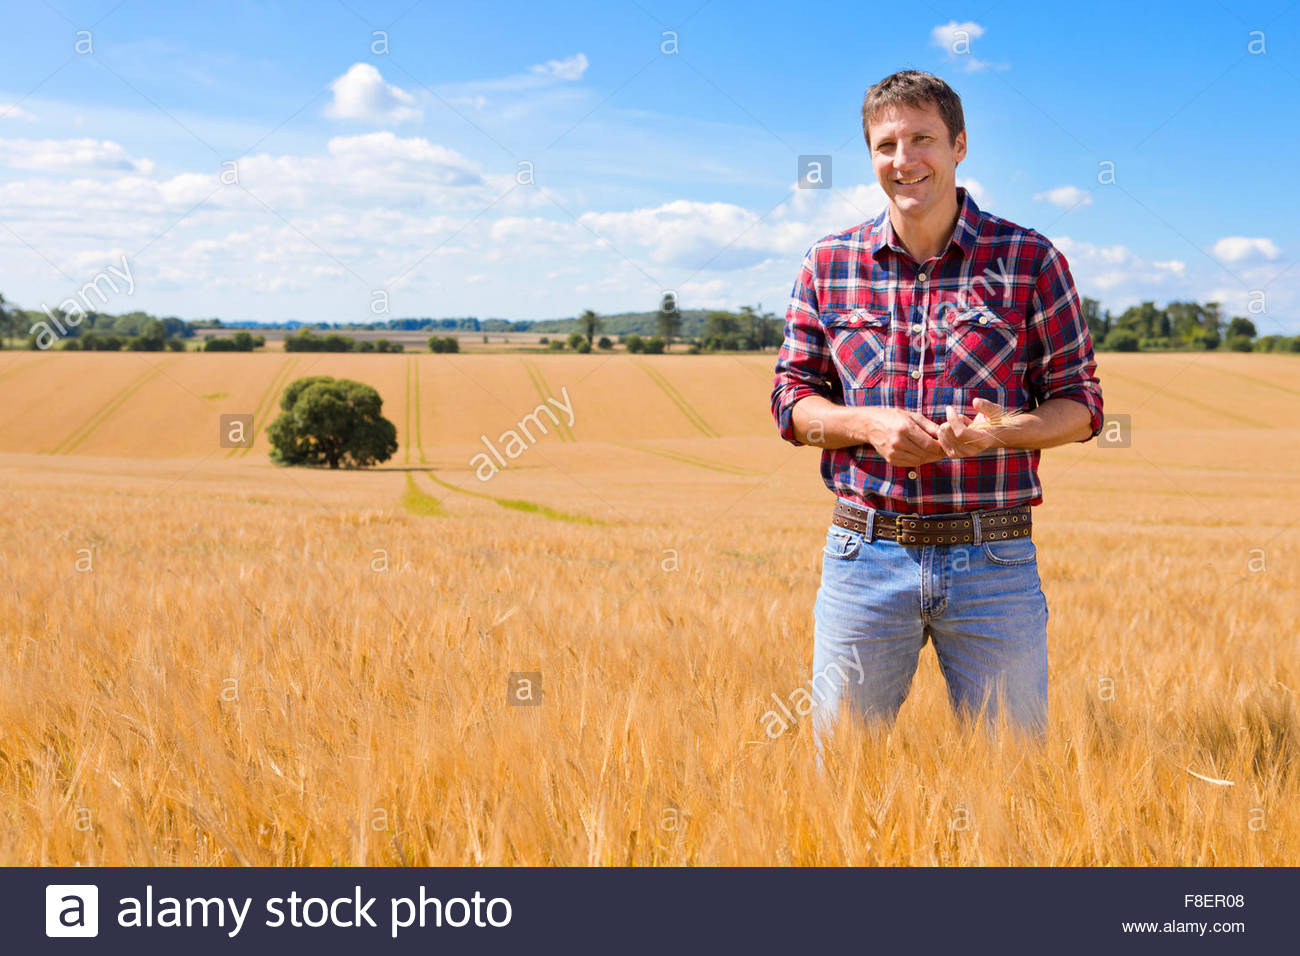 Portrait confident farmer in sunny rural barley crop field in summer - Stock Image